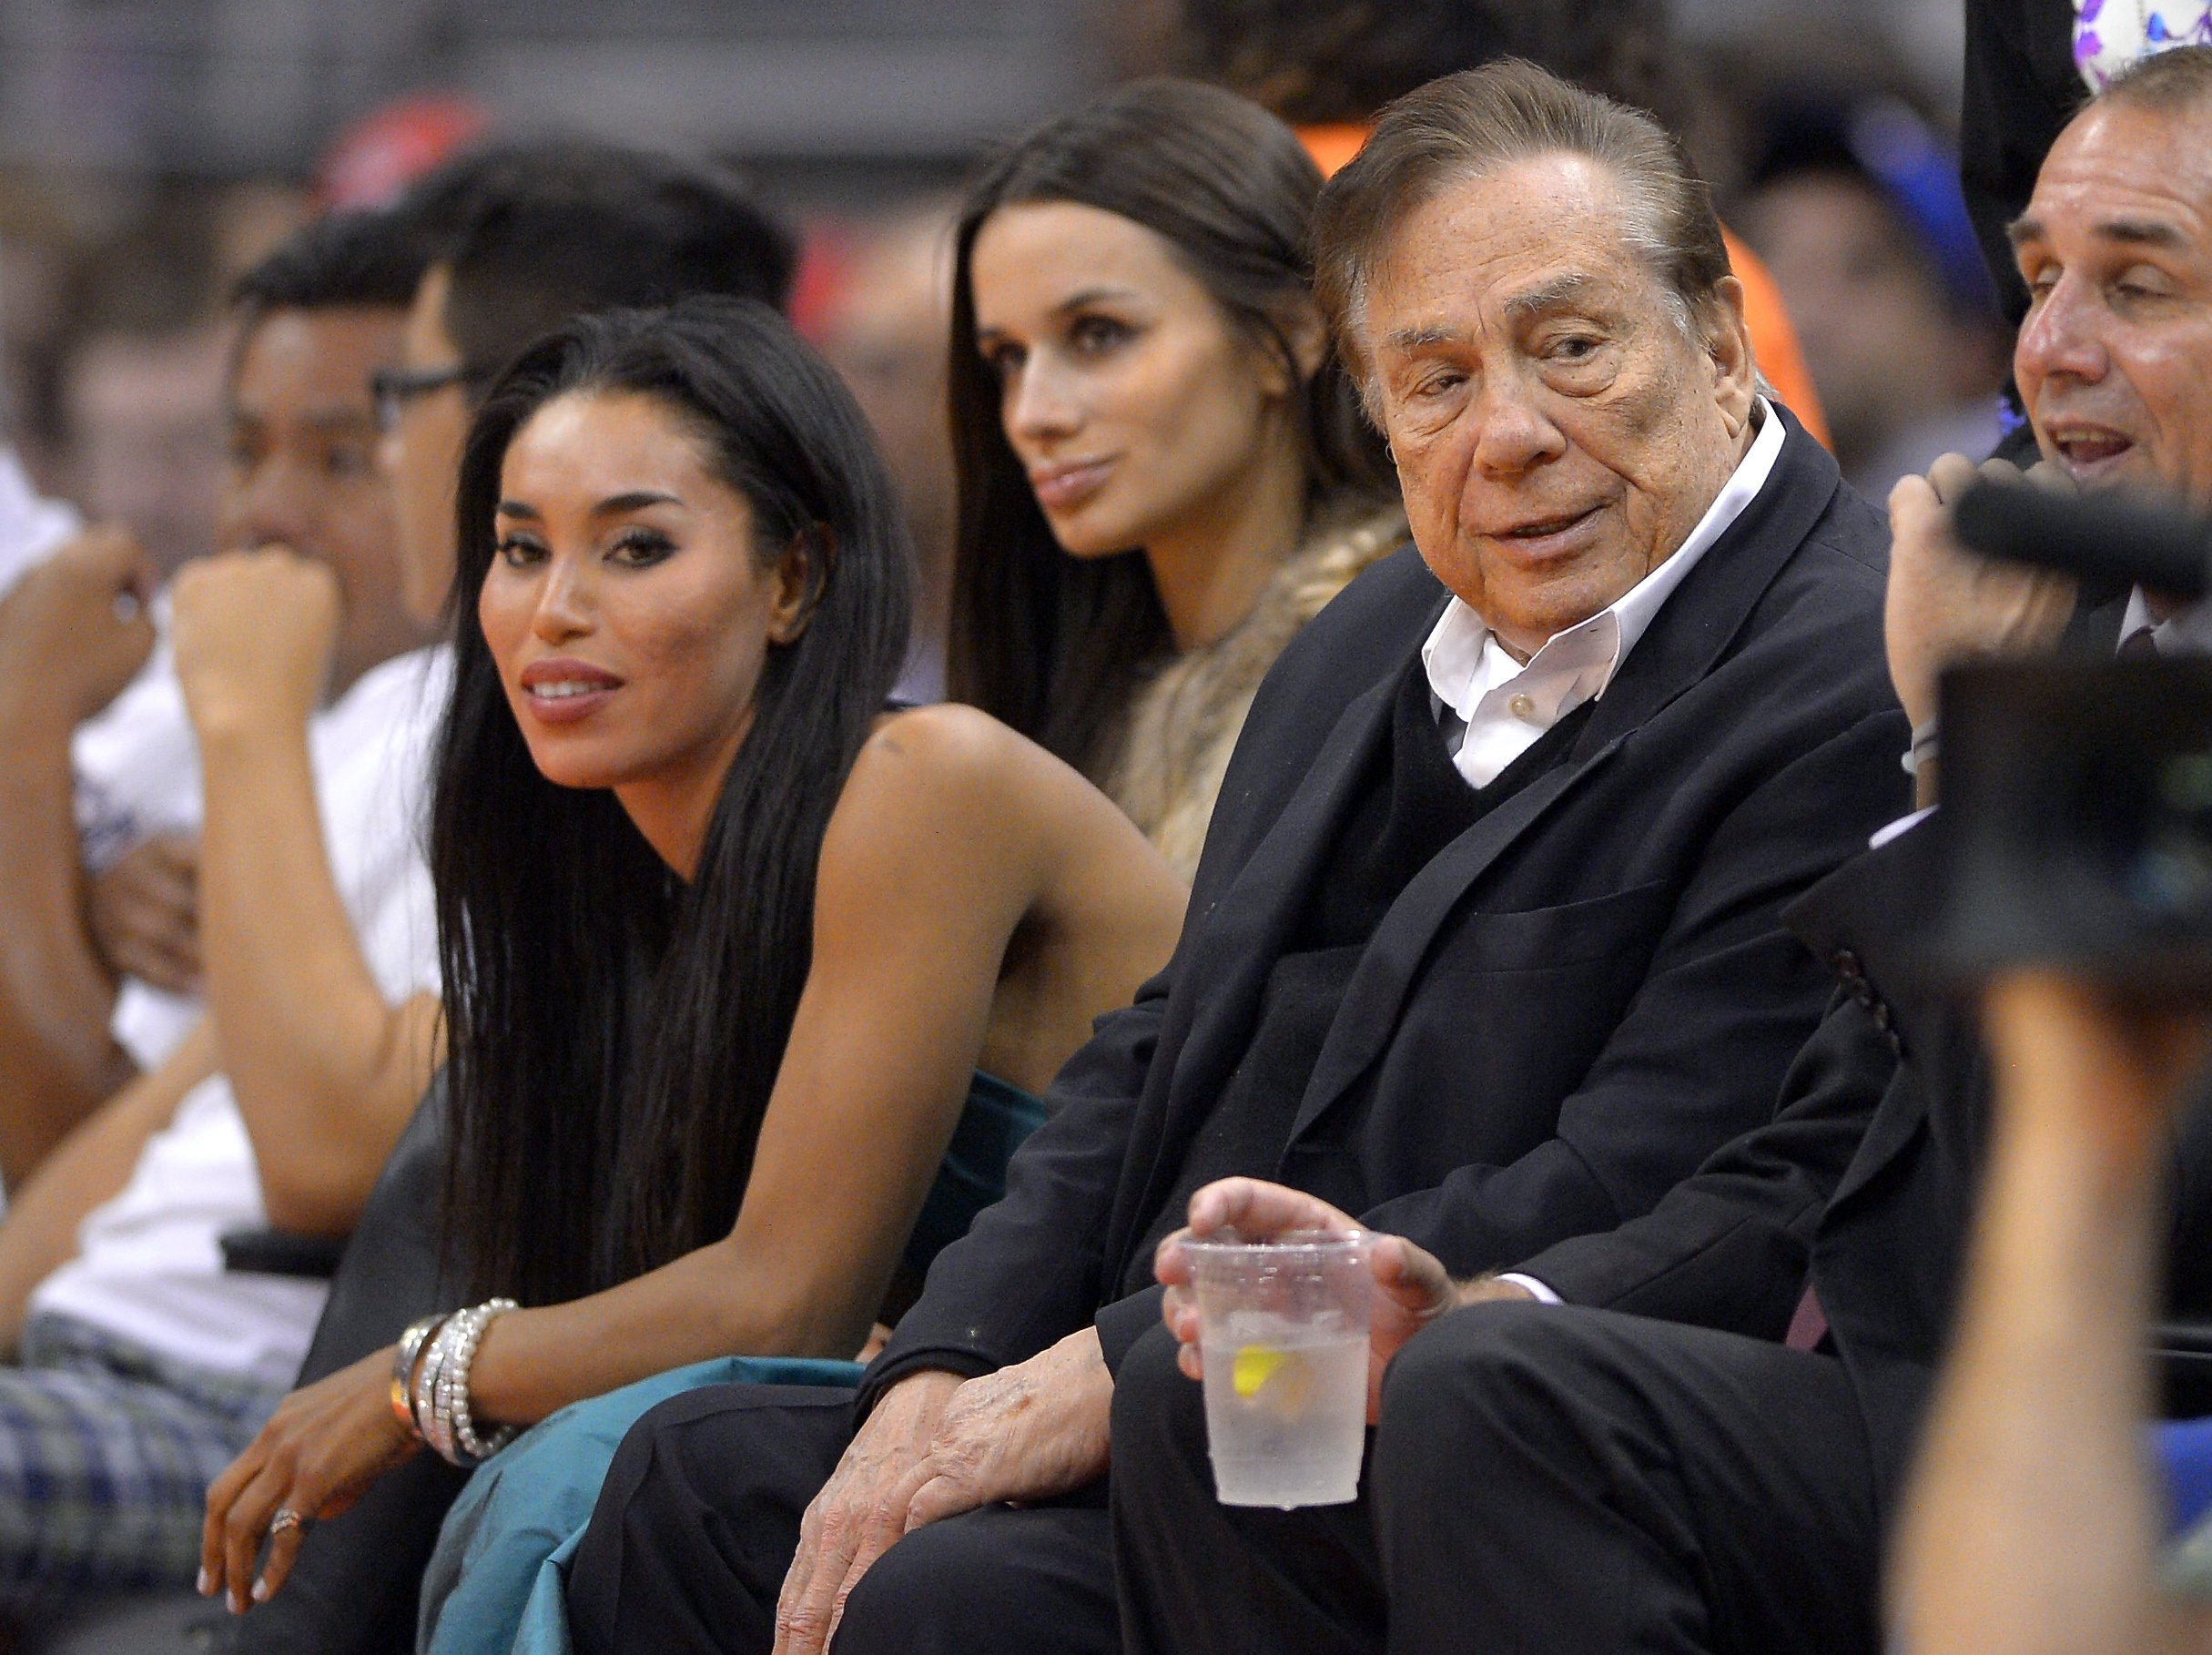 Los Angeles Clippers owner Donald Sterling, right, and V. Stiviano, left, watch the Clippers play the Sacramento Kings during an October game. NBA Commissioner Adam Silver on Tuesday banned Sterling for life from association with the NBA or the Clippers.